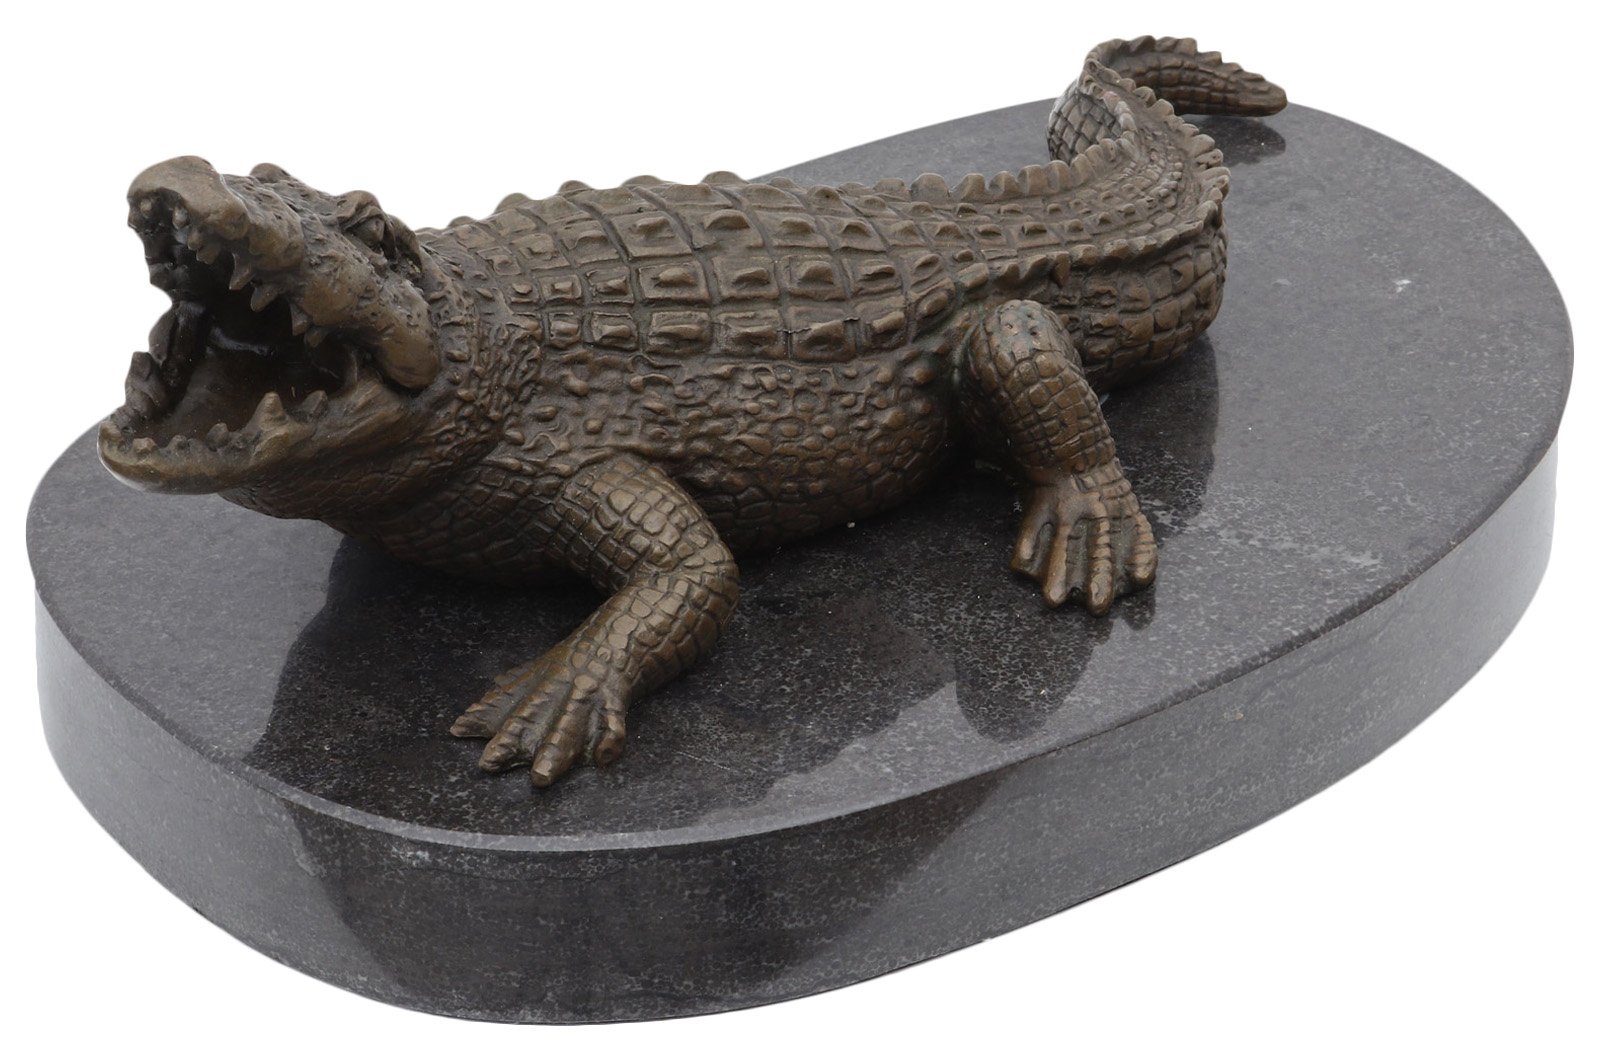 Skulptur Bronze Krokodil Alligator